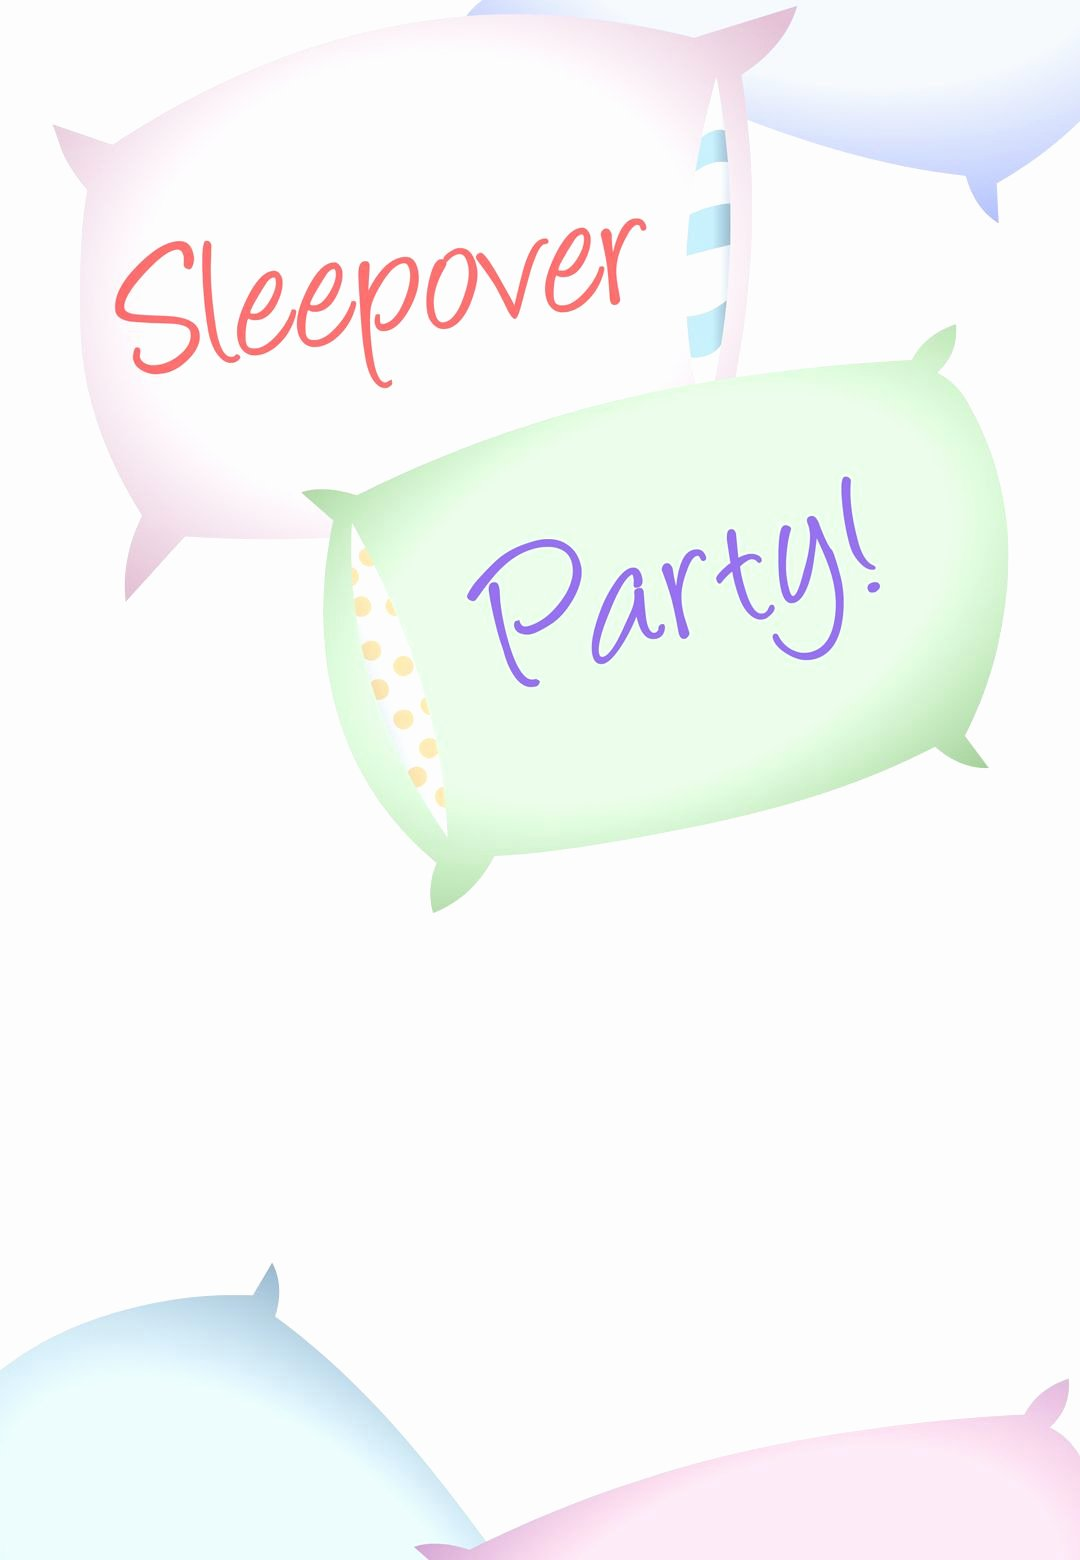 Slumber Party Invitation Template New Free Printable Sleepover Party Invitation